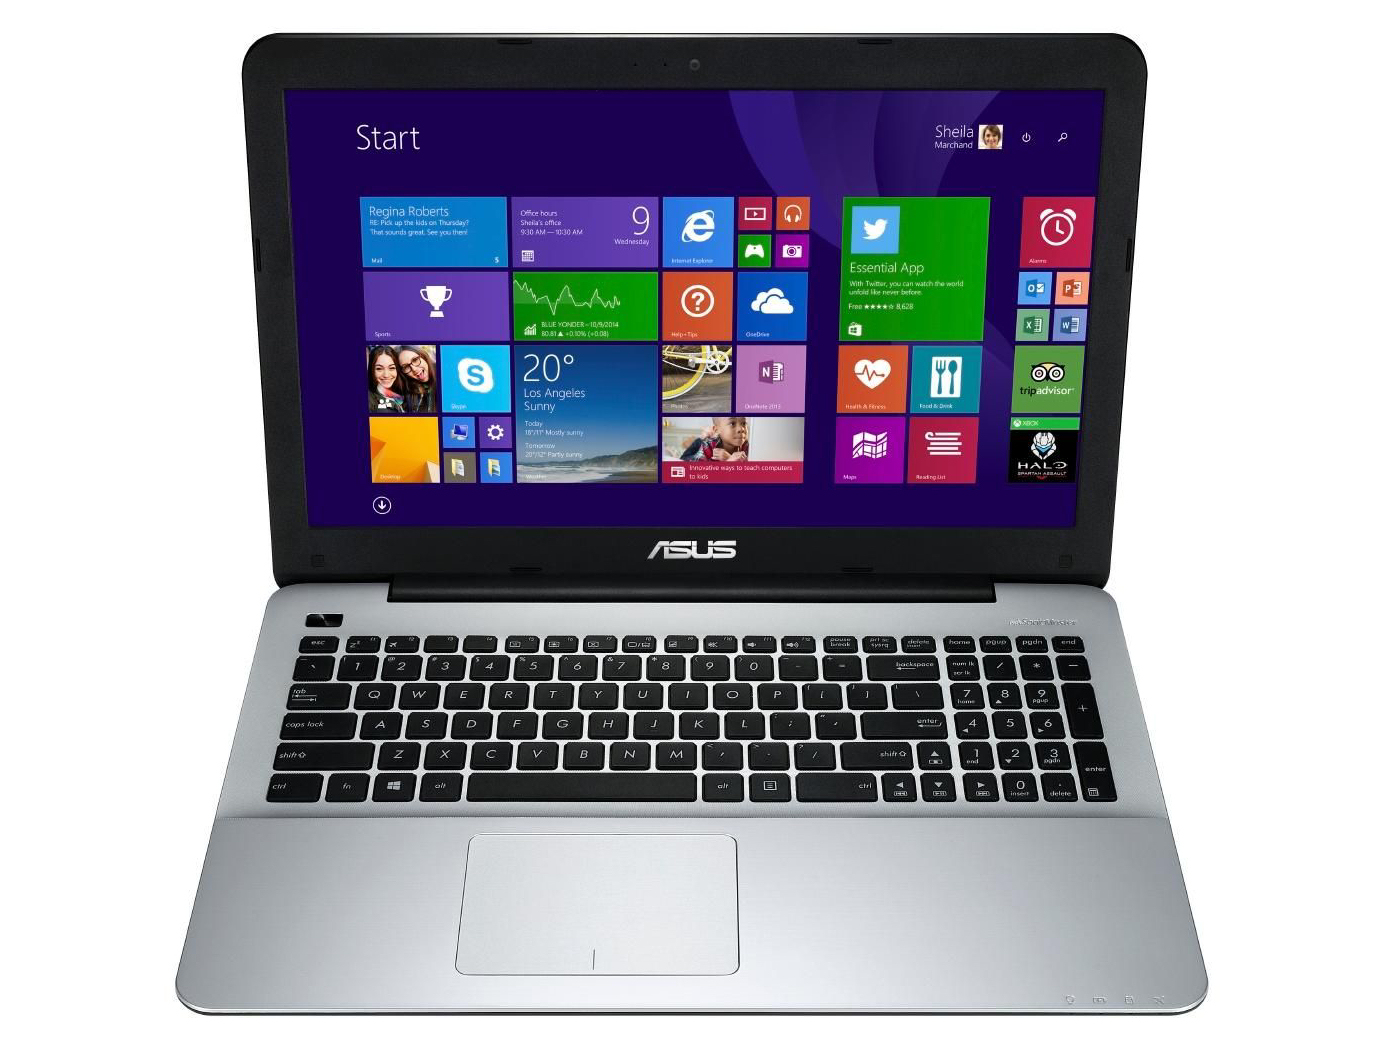 ASUS X454WA QUALCOMM ATHEROS WLAN WINDOWS 8 DRIVER